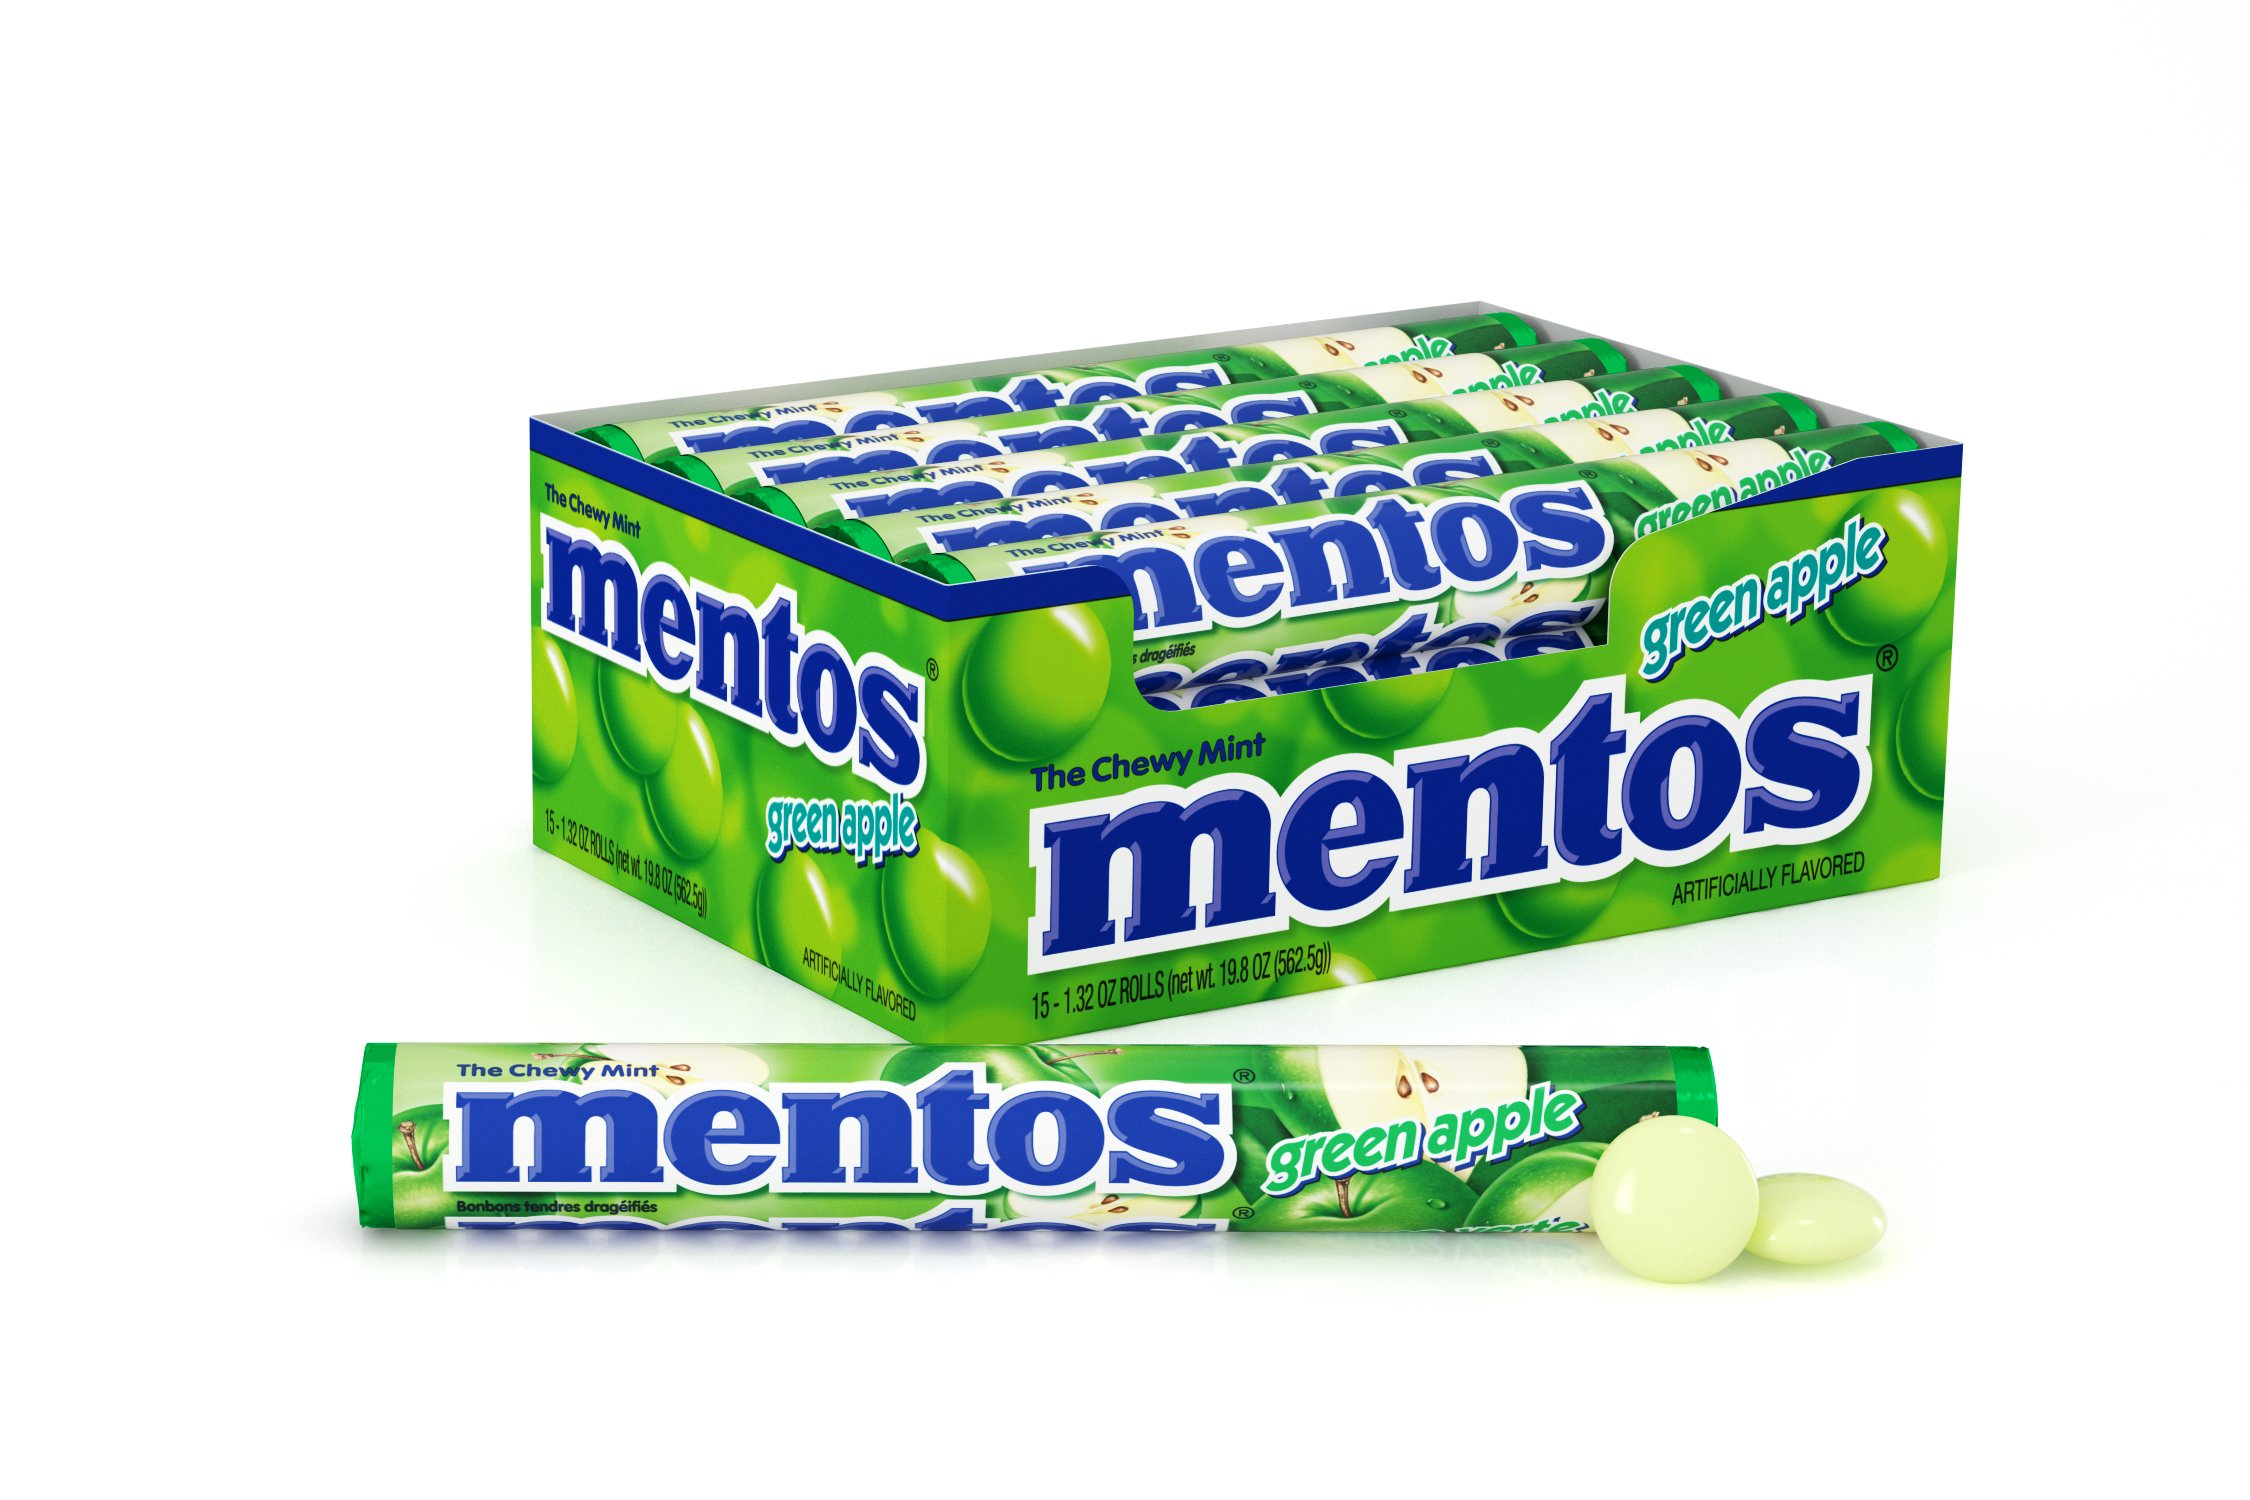 Mentos Chewy Mint Candy Roll, Green Apple, Easter Basket Candy, 1.32 ounce/14 Pieces (Pack of 15)